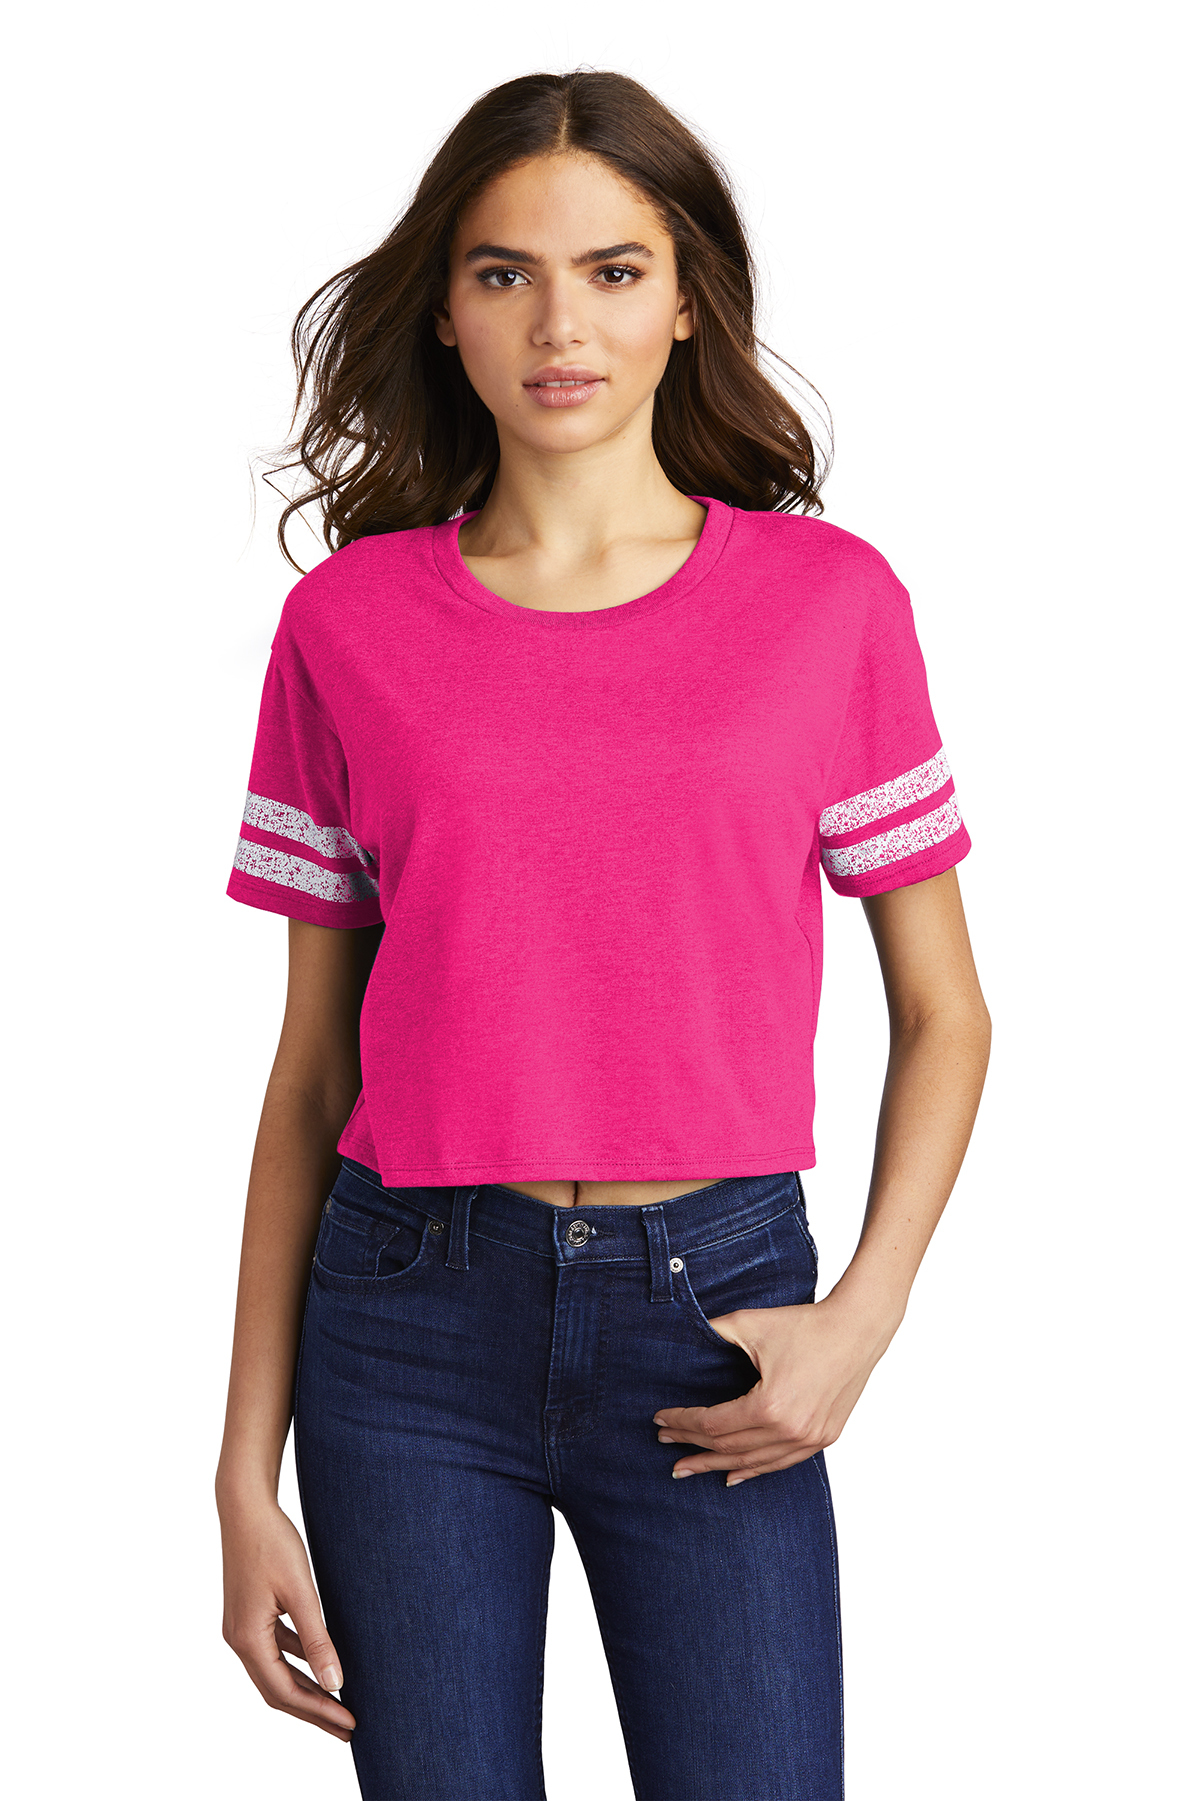 District DT488 - Women's Scorecard Crop Tee